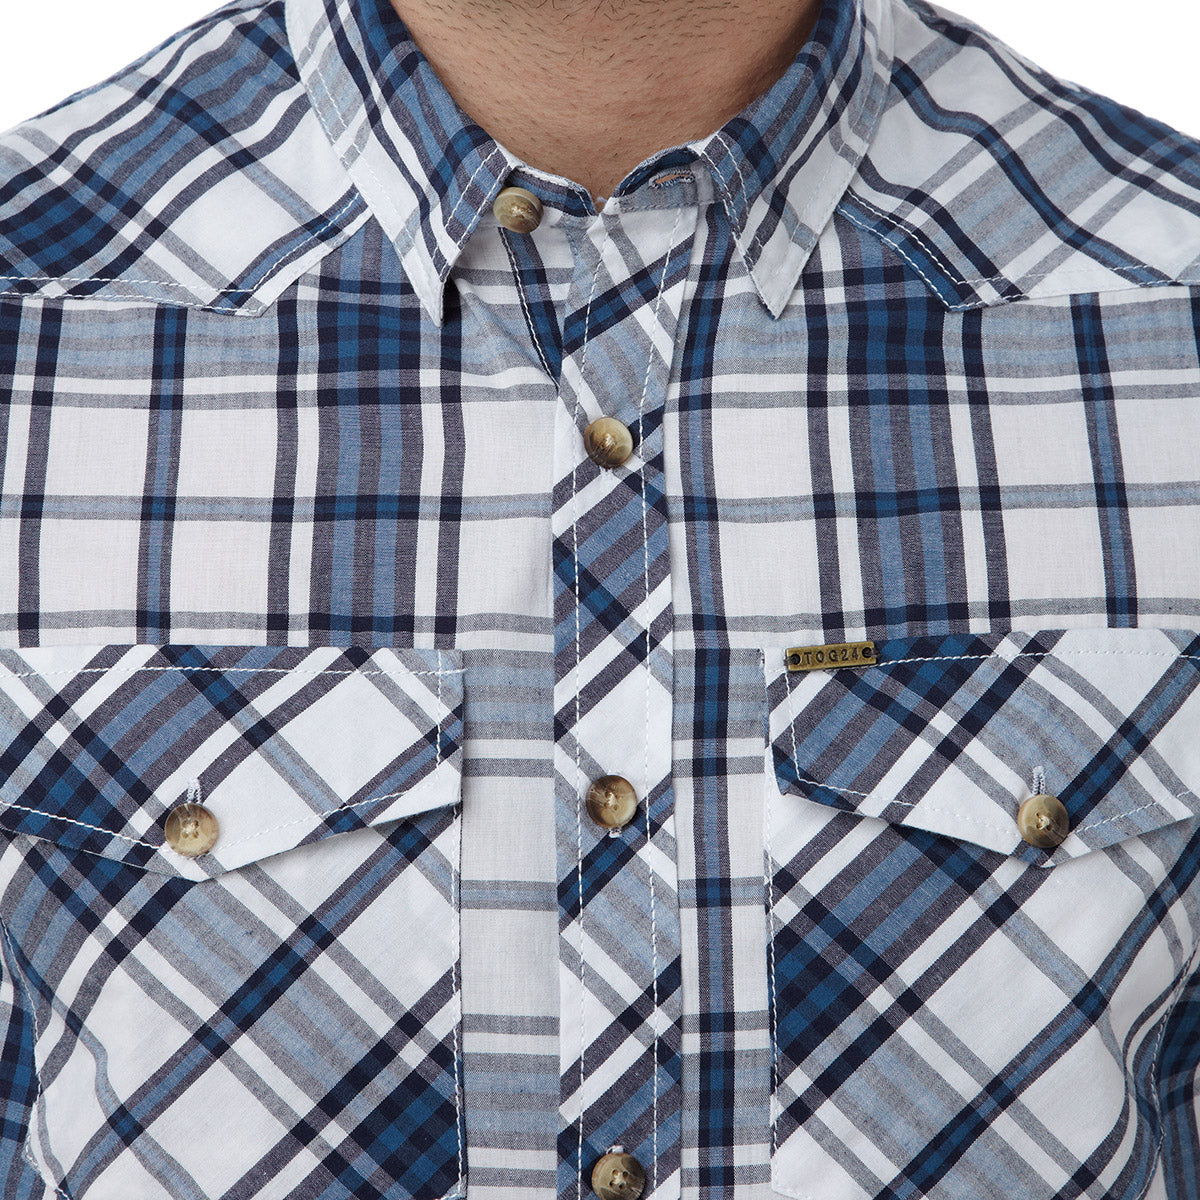 Oliver Mens TCZ Cotton Shirt - Faded Navy Check image 4